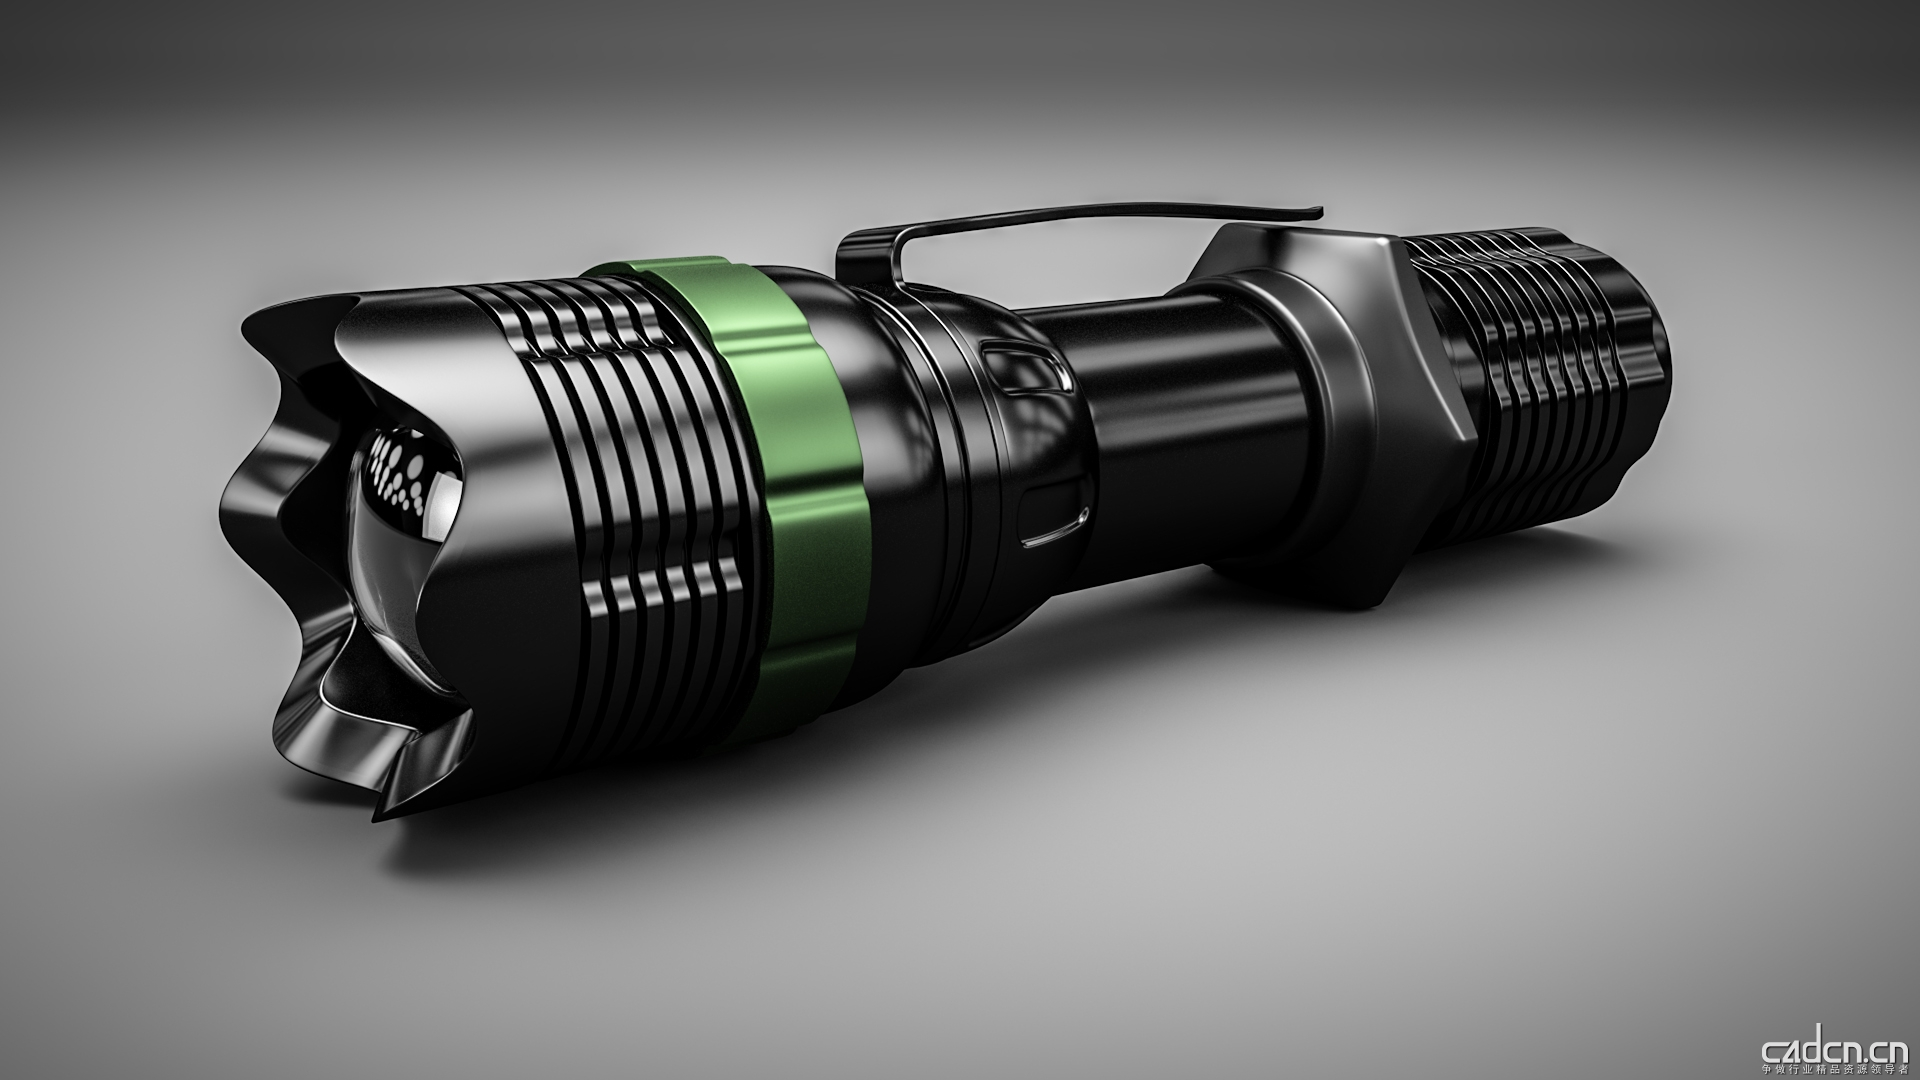 Flashlight_0002_01.jpg